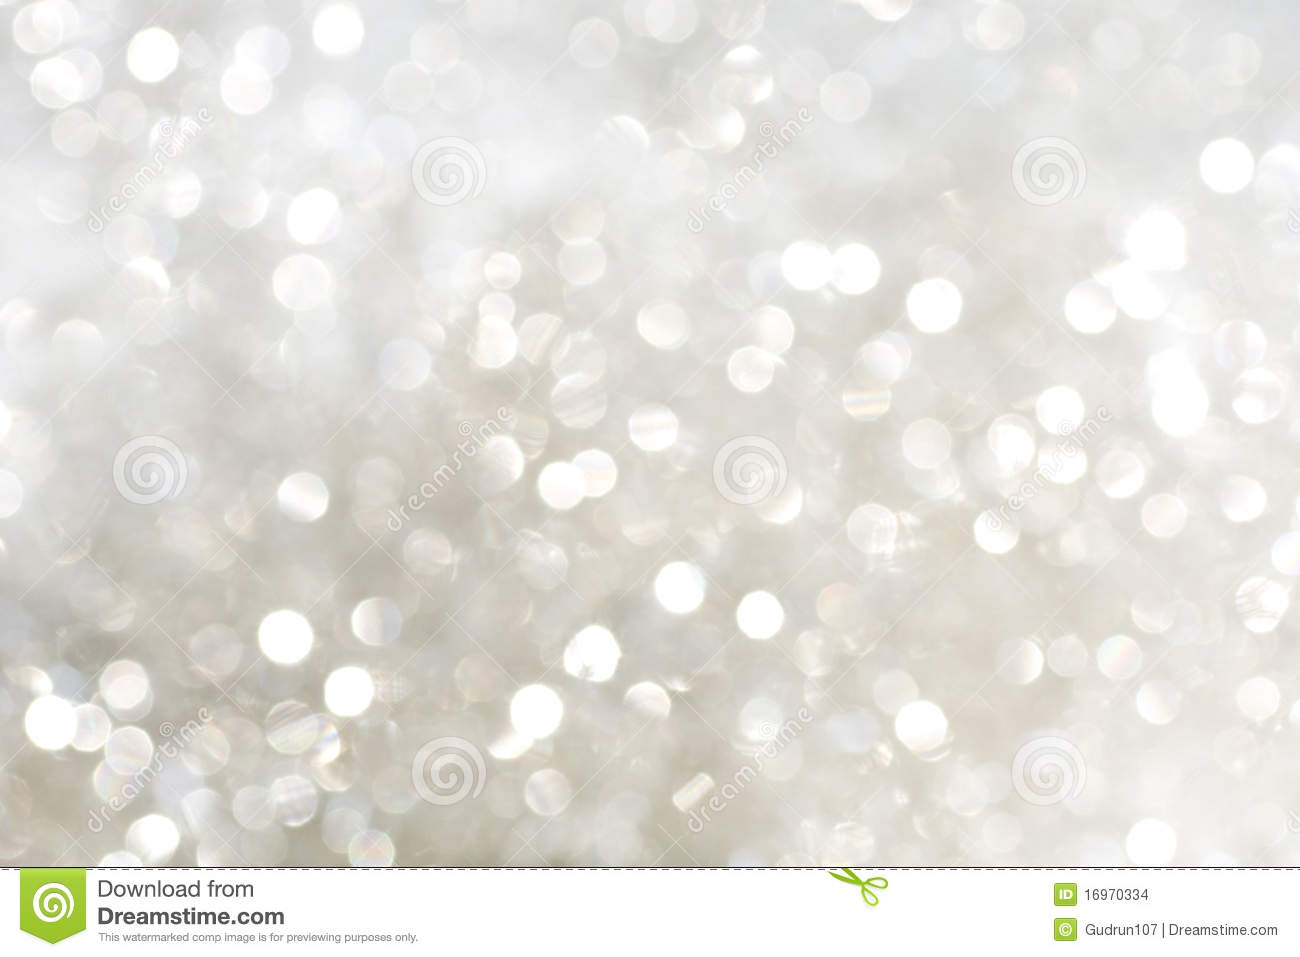 Iphone 5 Falling Snow Wallpaper White And Silver Sparkles Stock Images Image 16970334